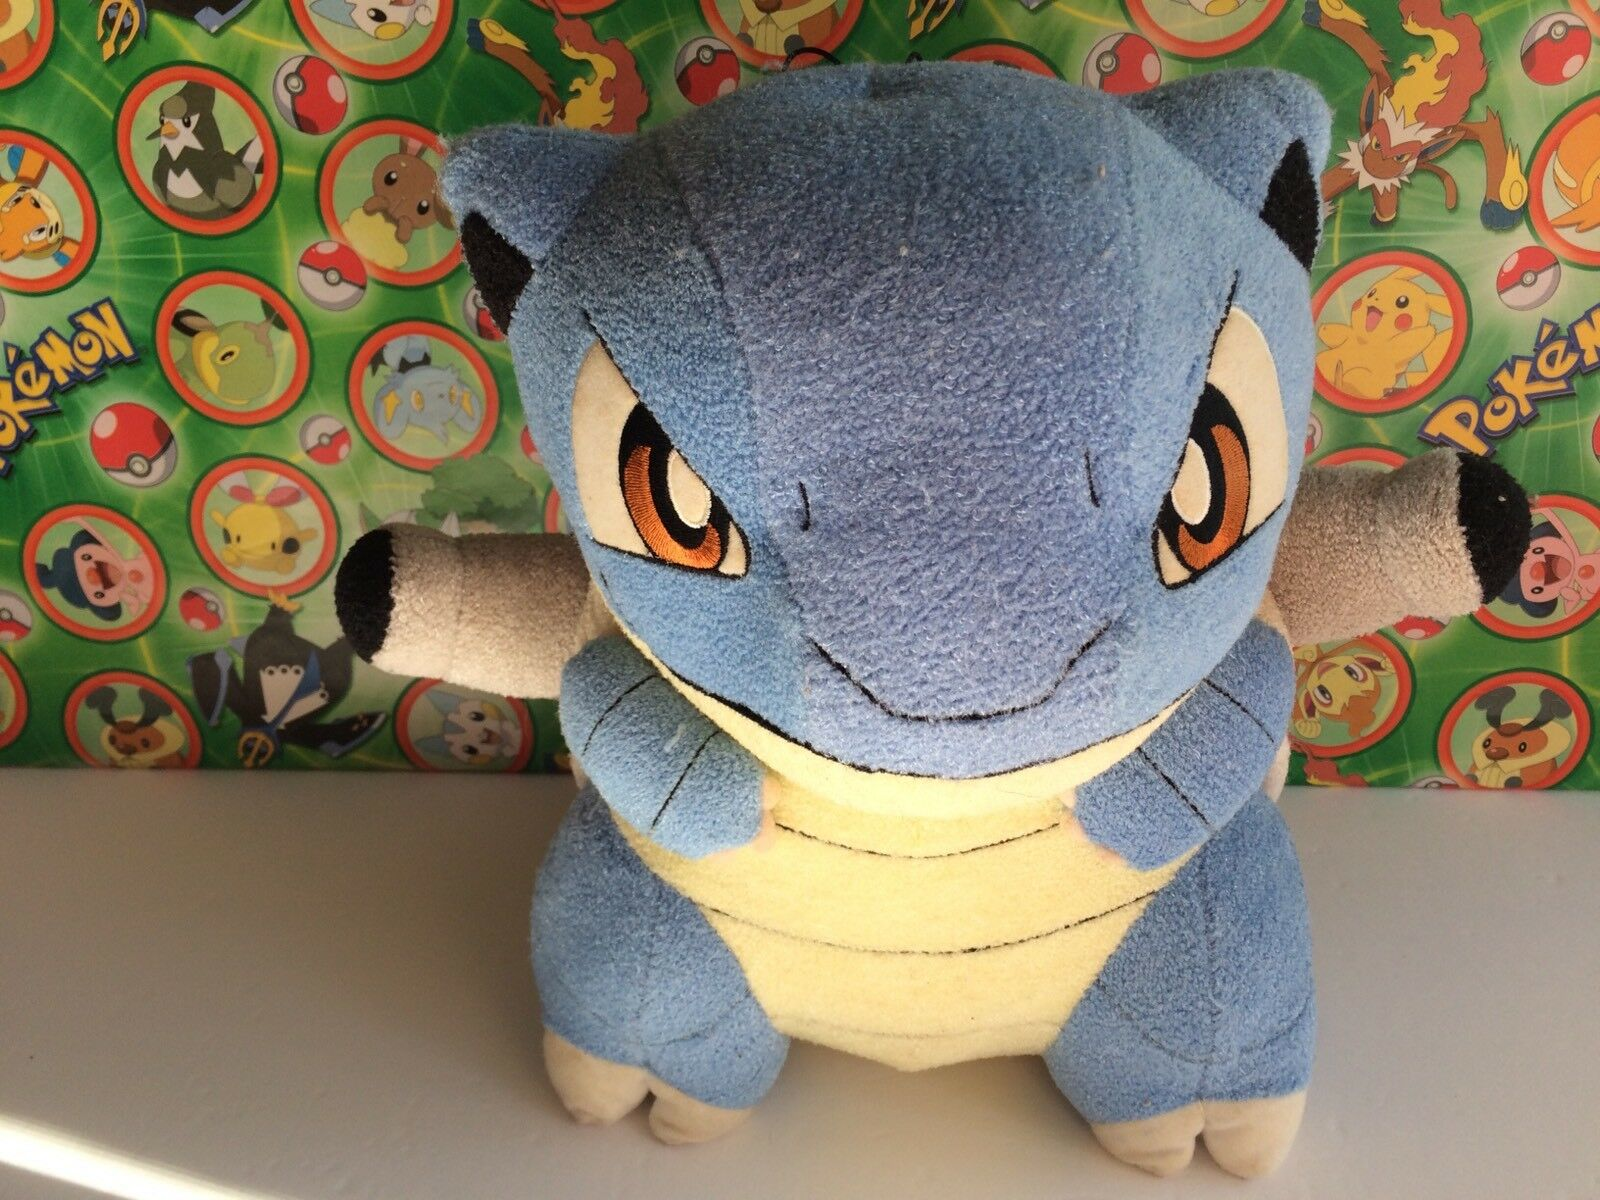 Pokemon Plush Blastoise DX Big 11  Banpresto 2005 2005 2005 UFO Huge doll Stuffed figure ecb15a